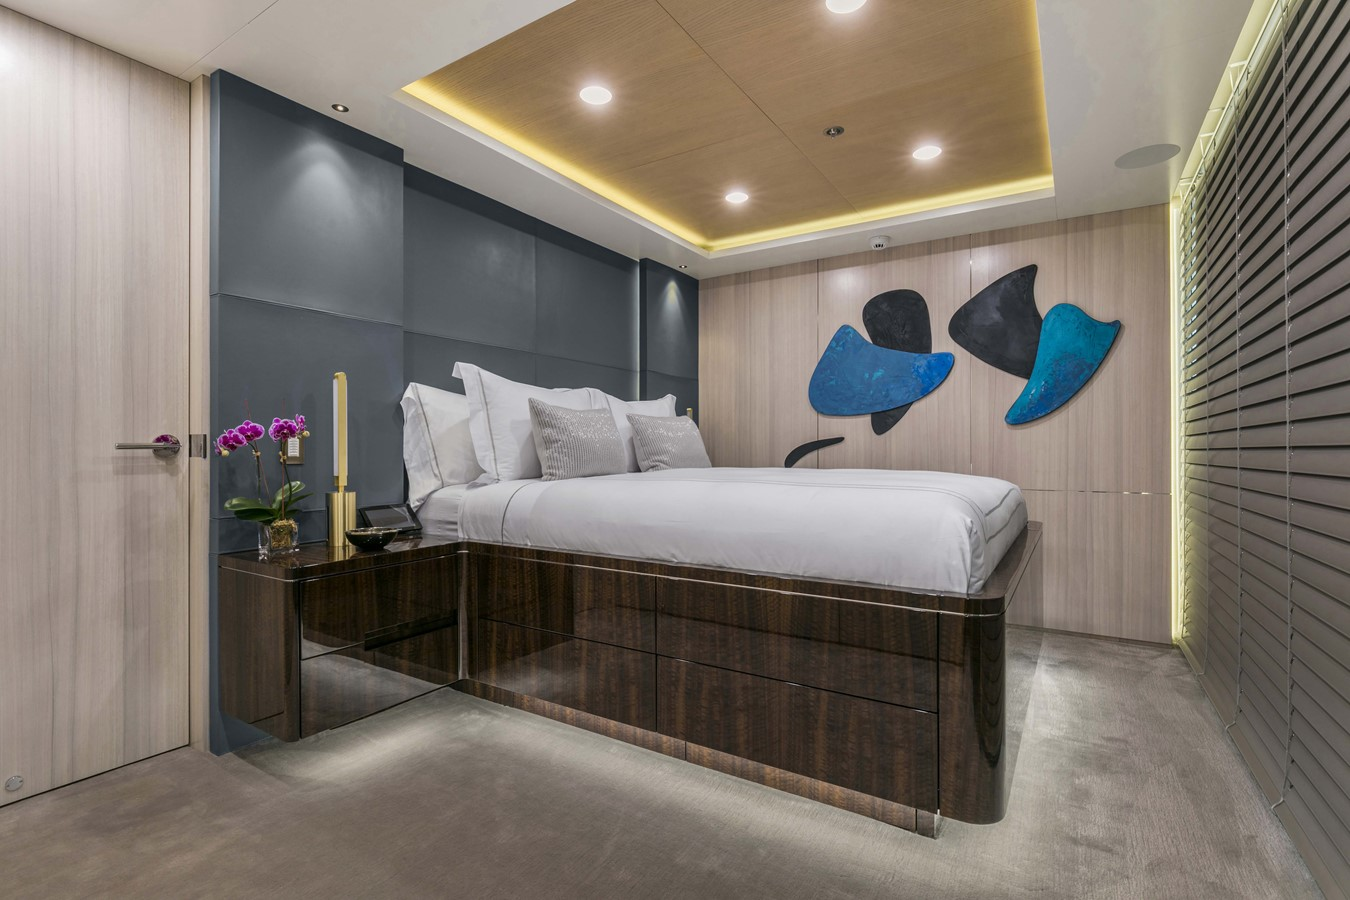 VIP Stateroom - 165 FEADSHIP For Sale